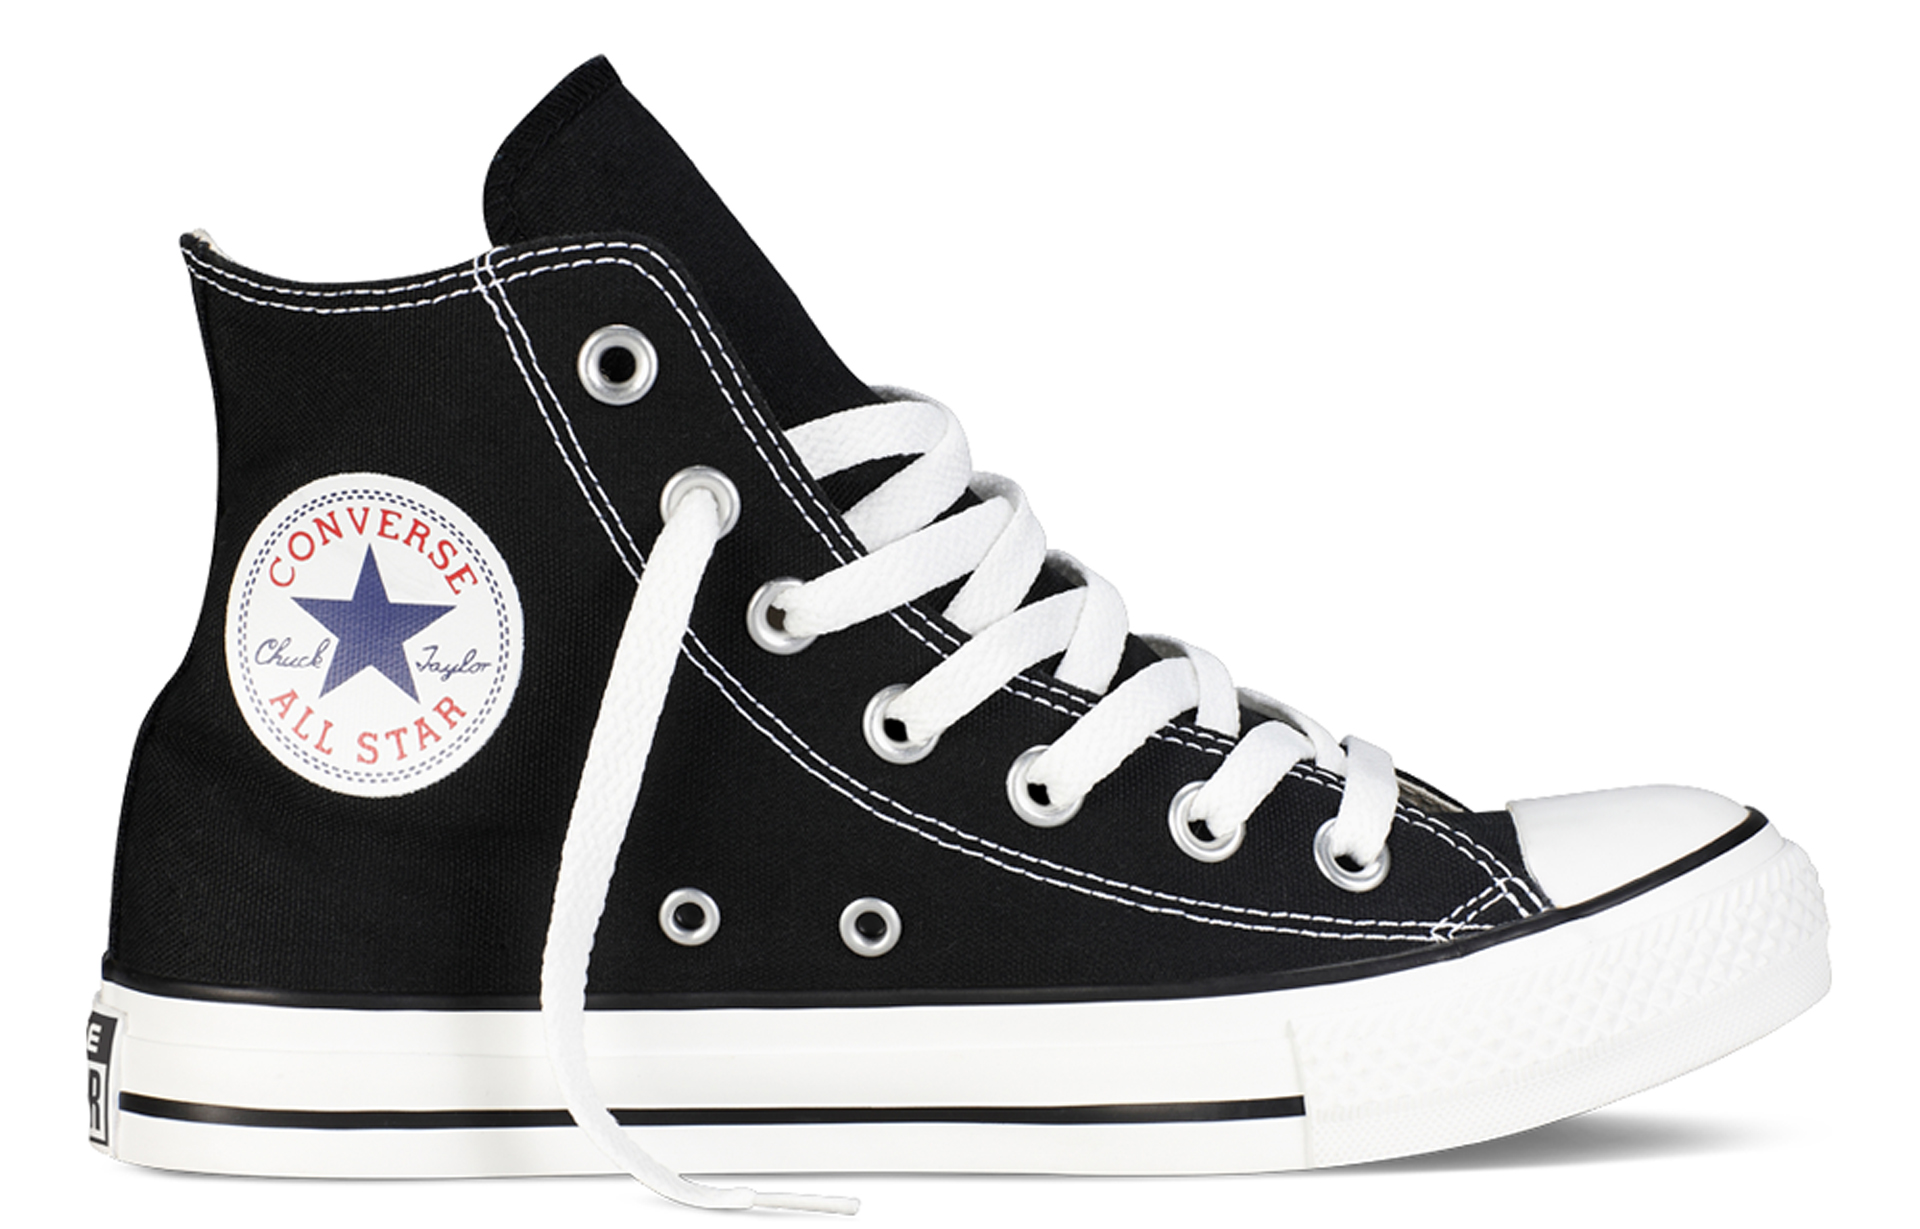 converse classic chuck taylor classic FDNHLHP